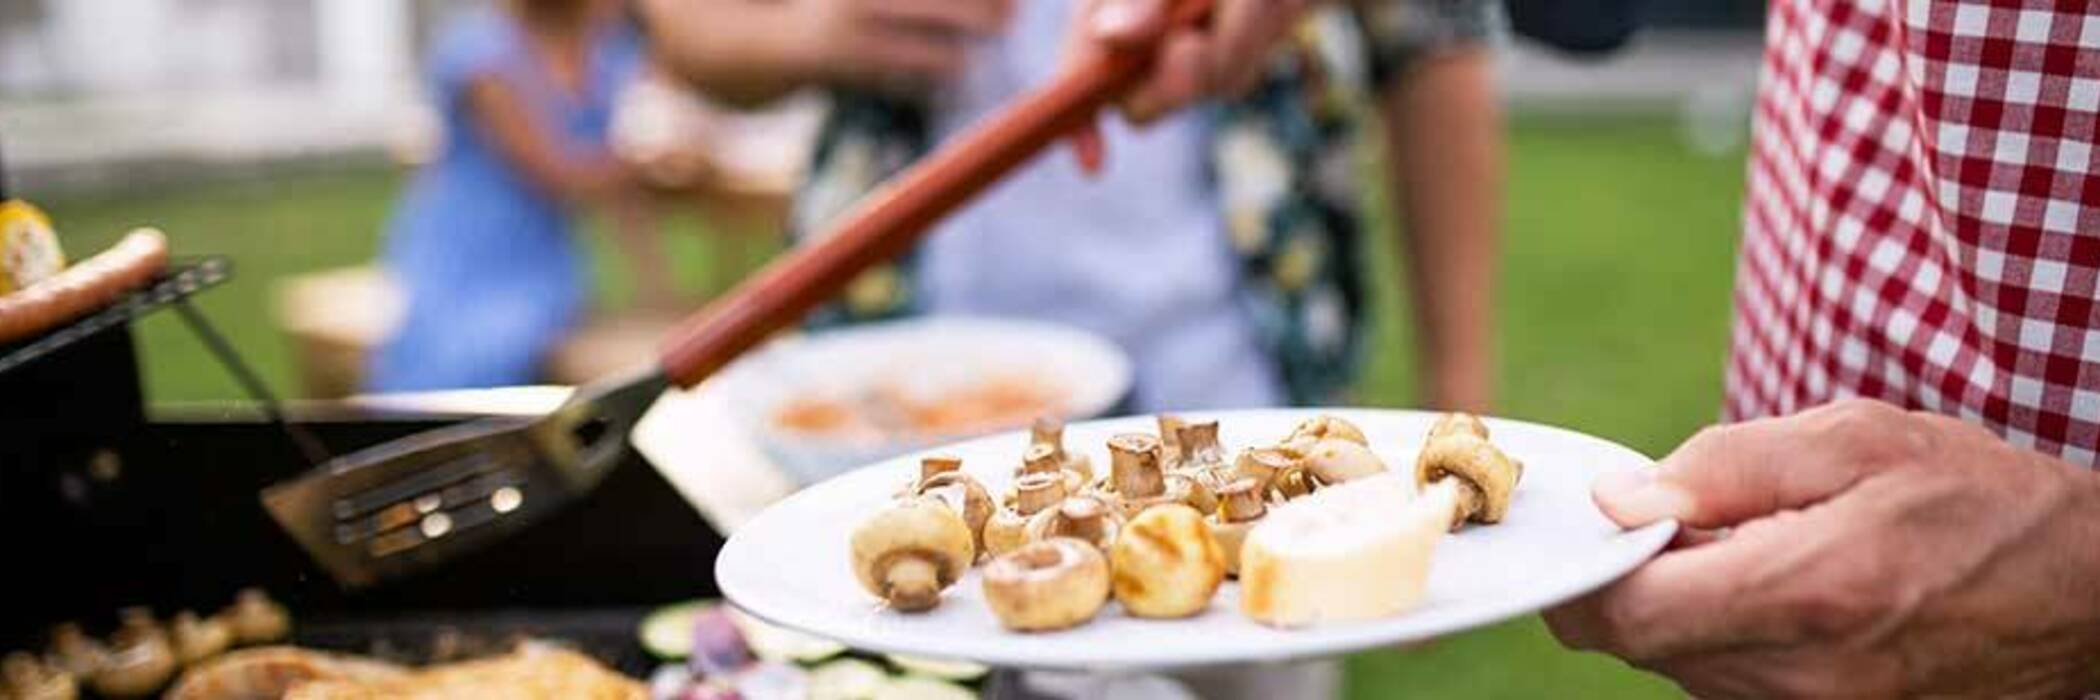 Man barbecuing a plate of mushrooms.